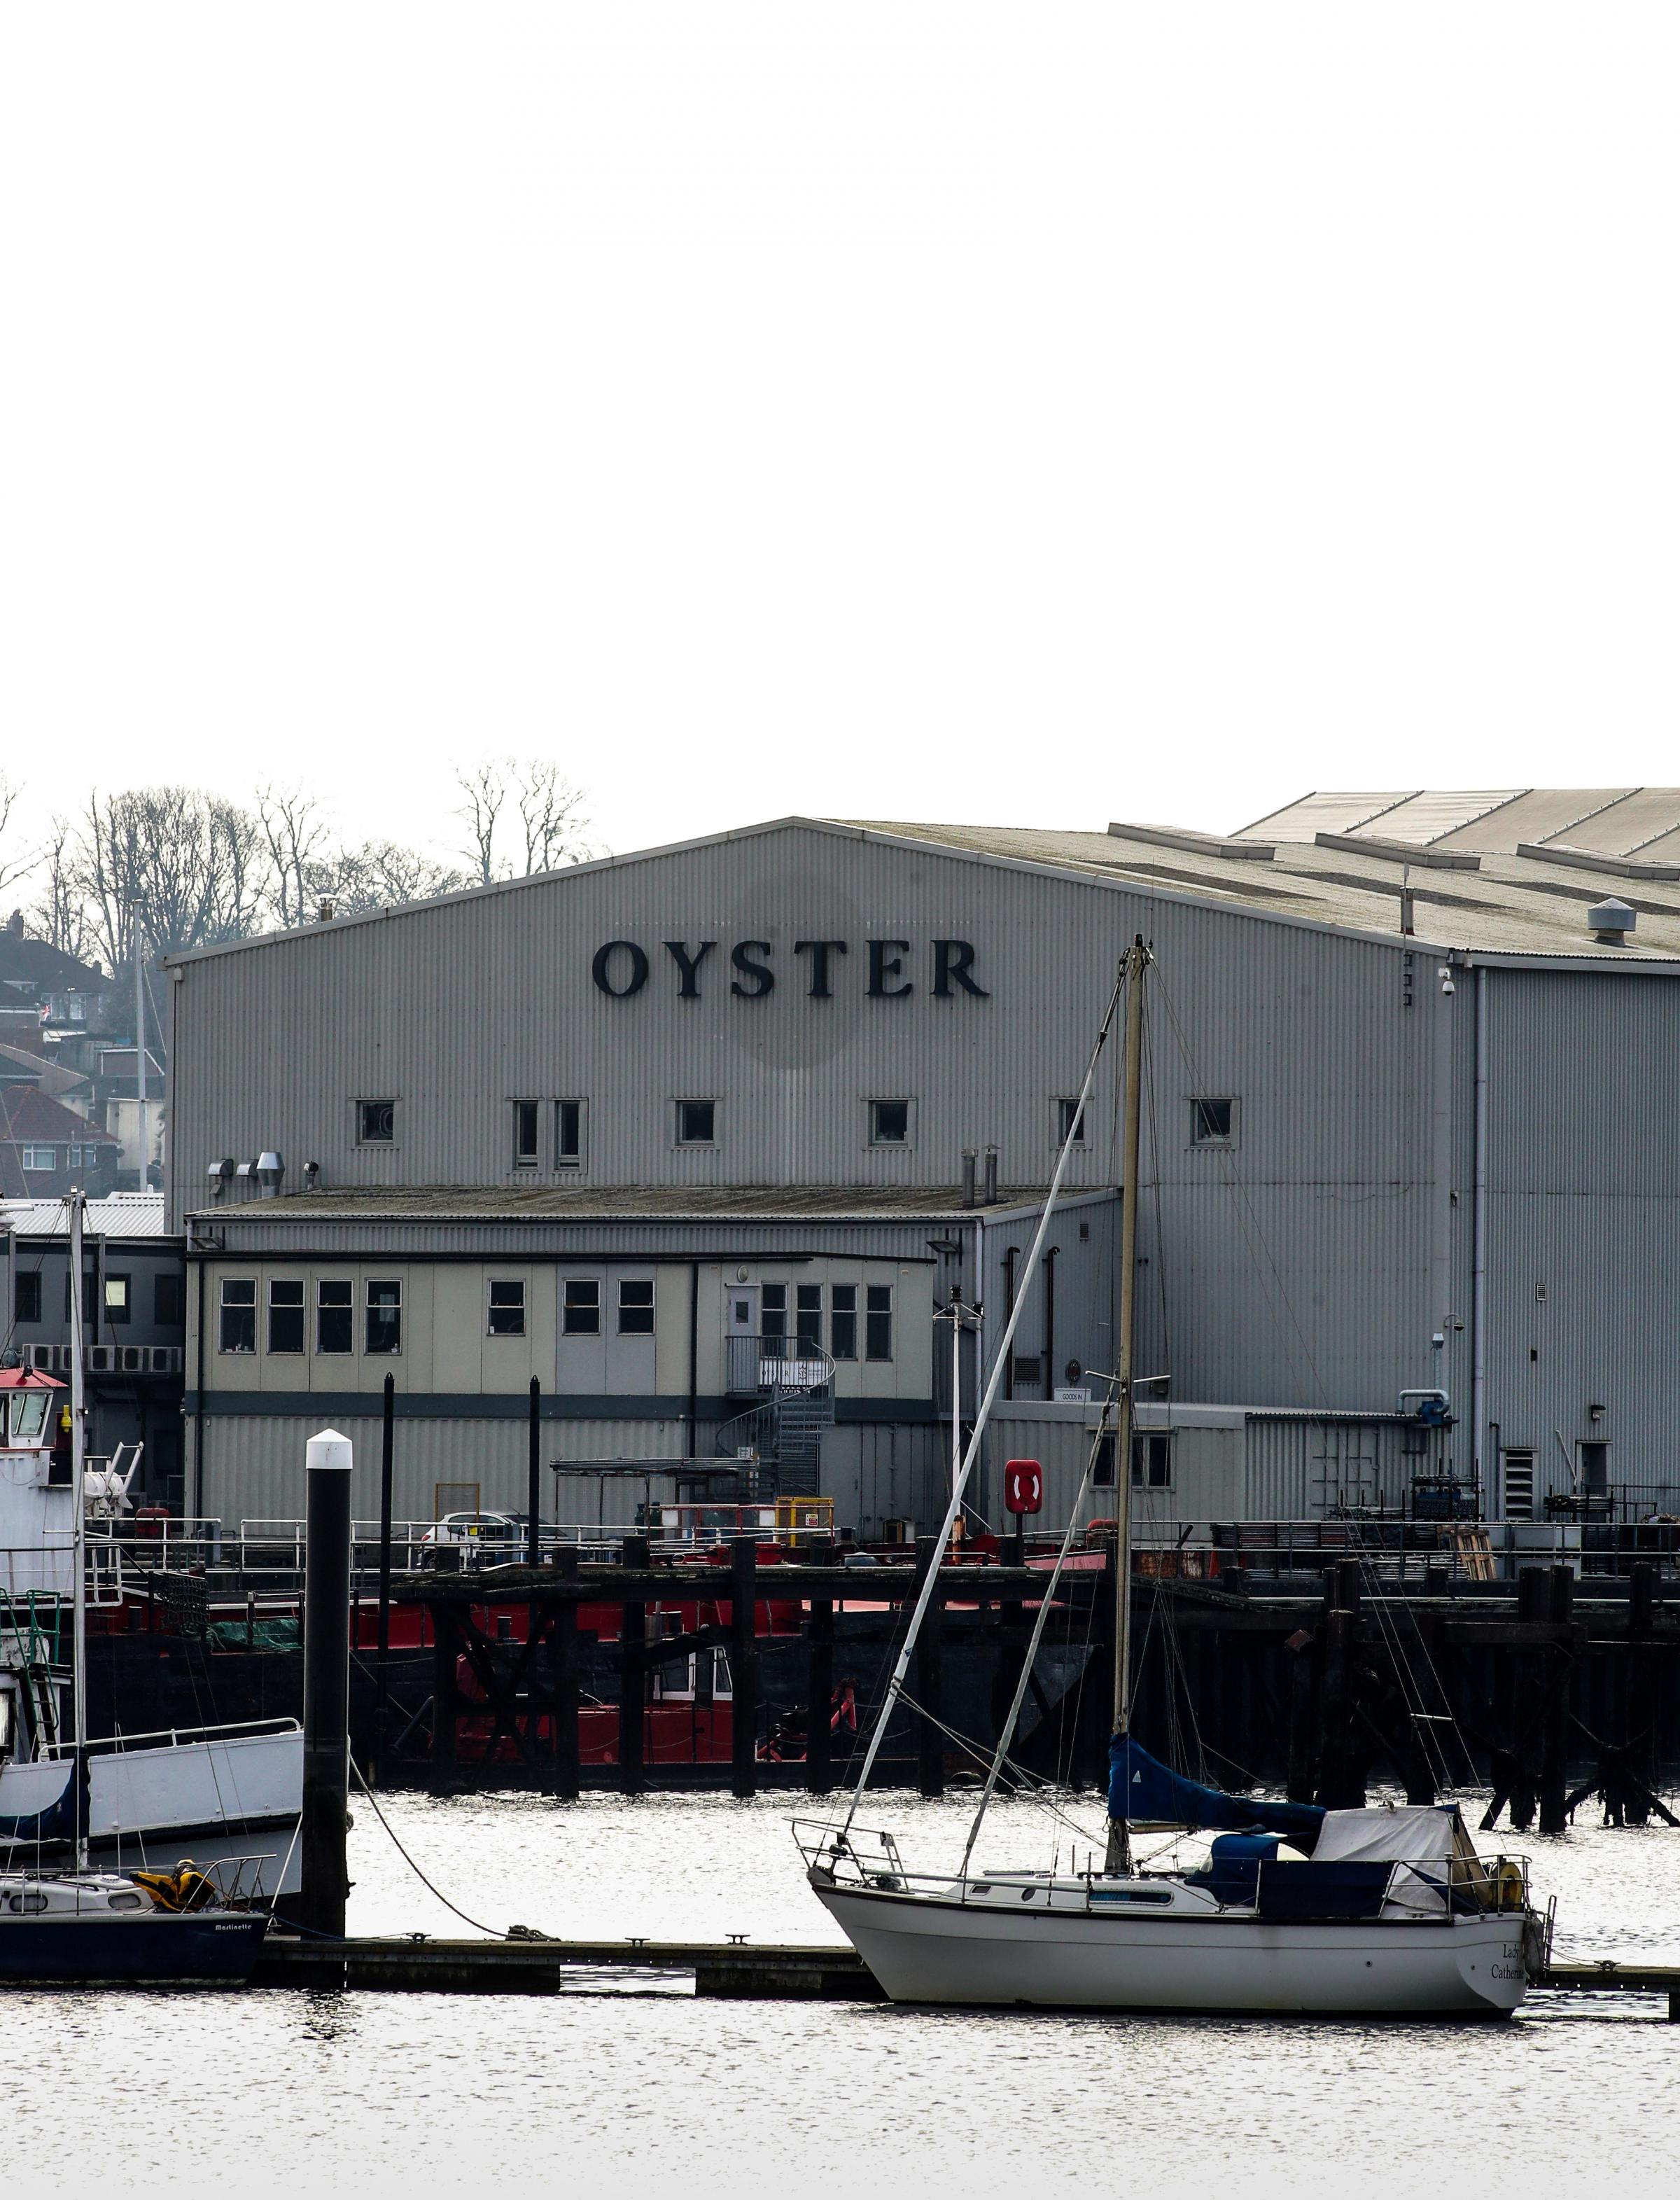 Oyster Yachts in Saxon Wharf Southampton.